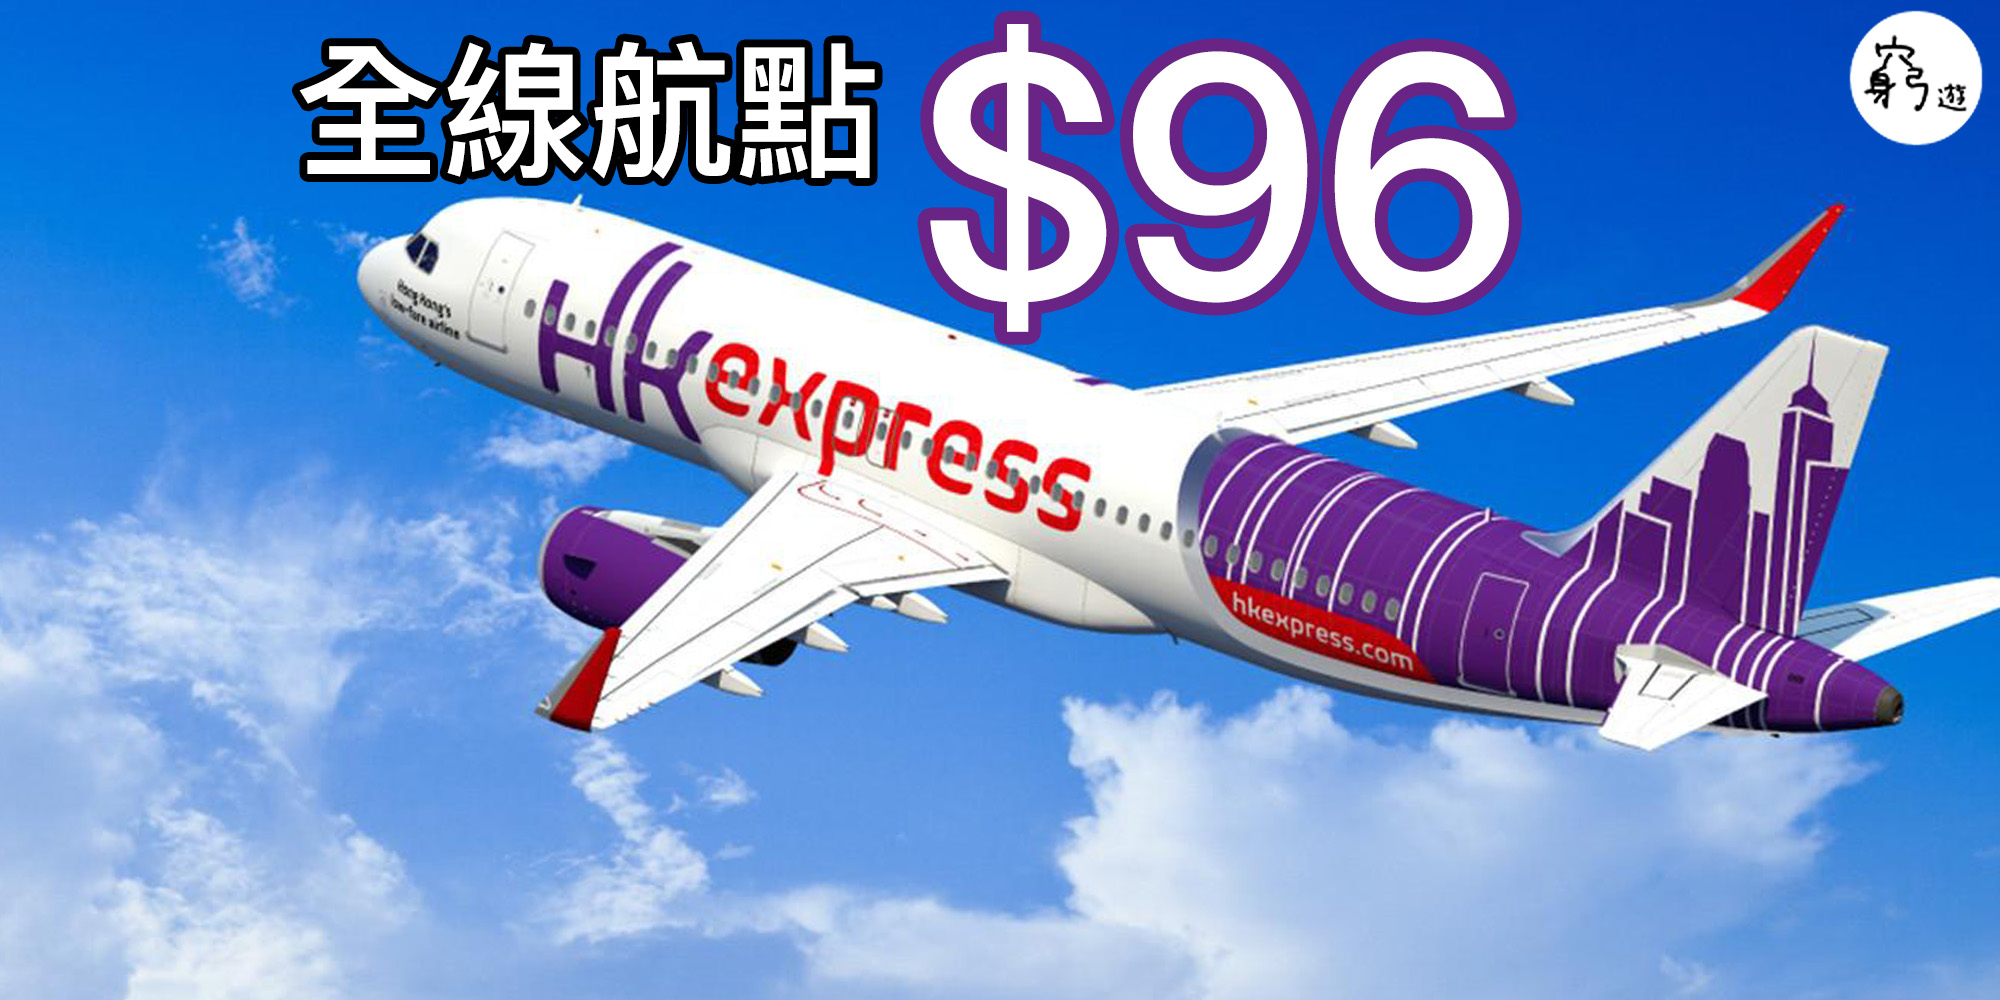 hkexpress-mega-sale